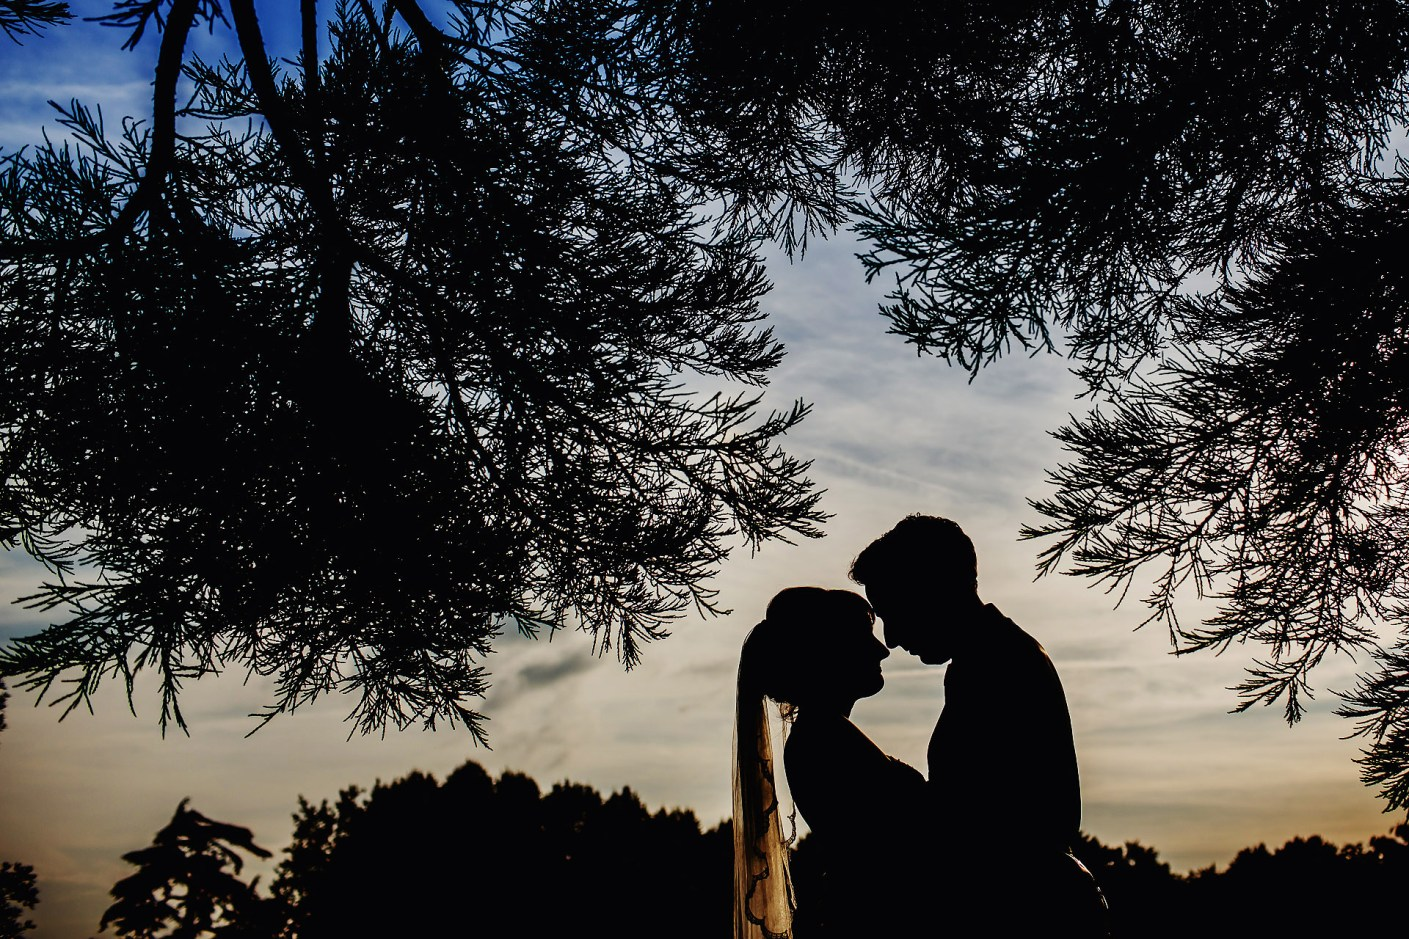 silhouette in the trees